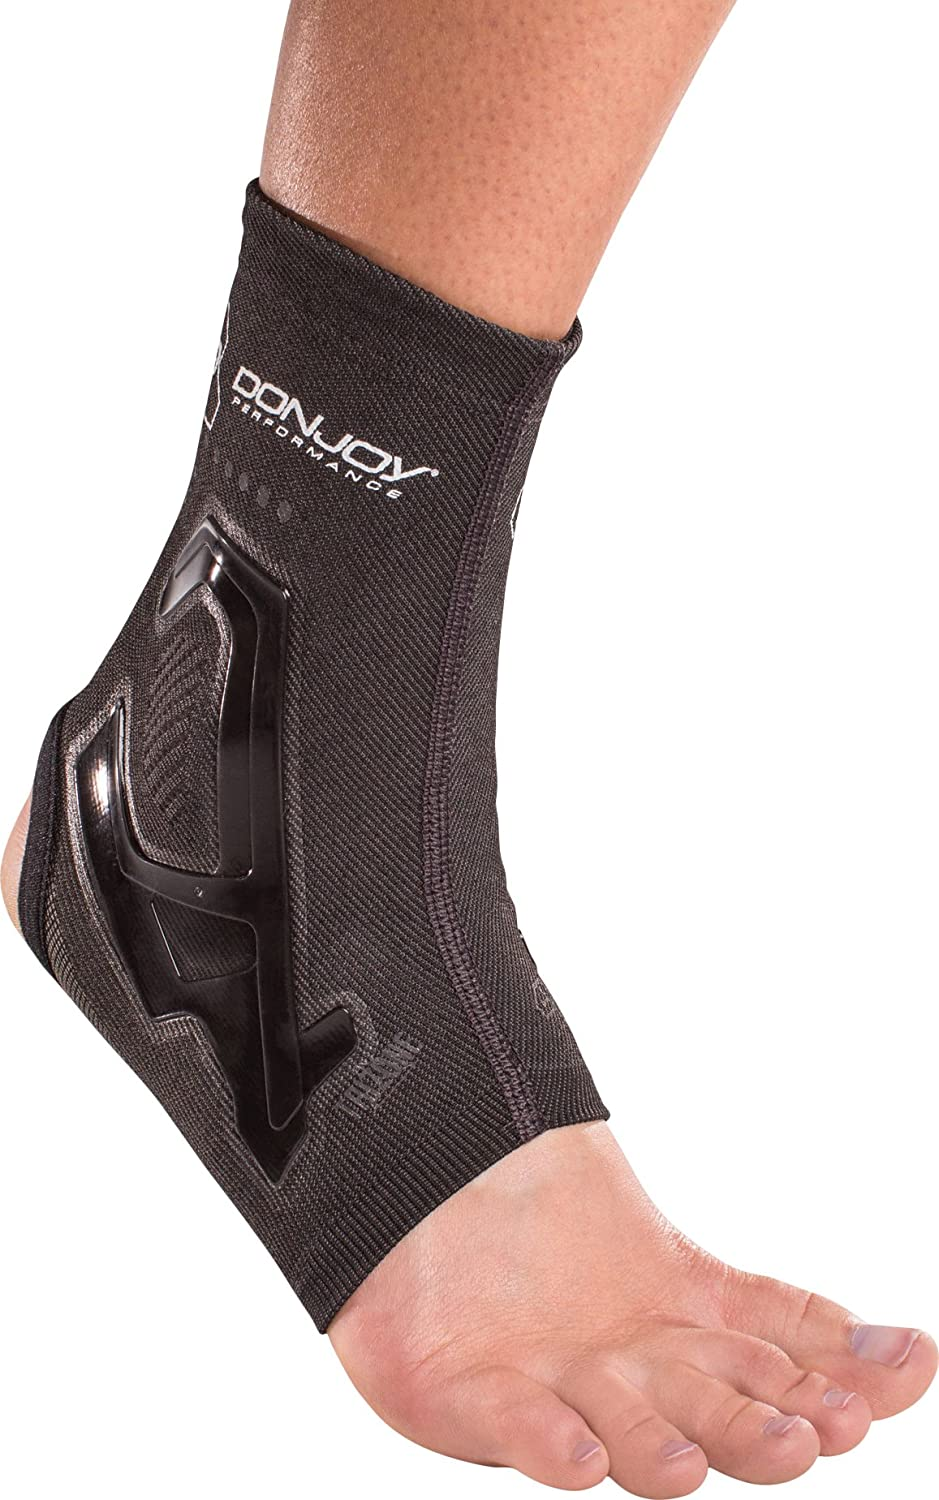 a4ebbd240b DonJoy Performance Trizone Ankle Compression Sleeve – Low-Profile Brace,  Fits in Cleats or